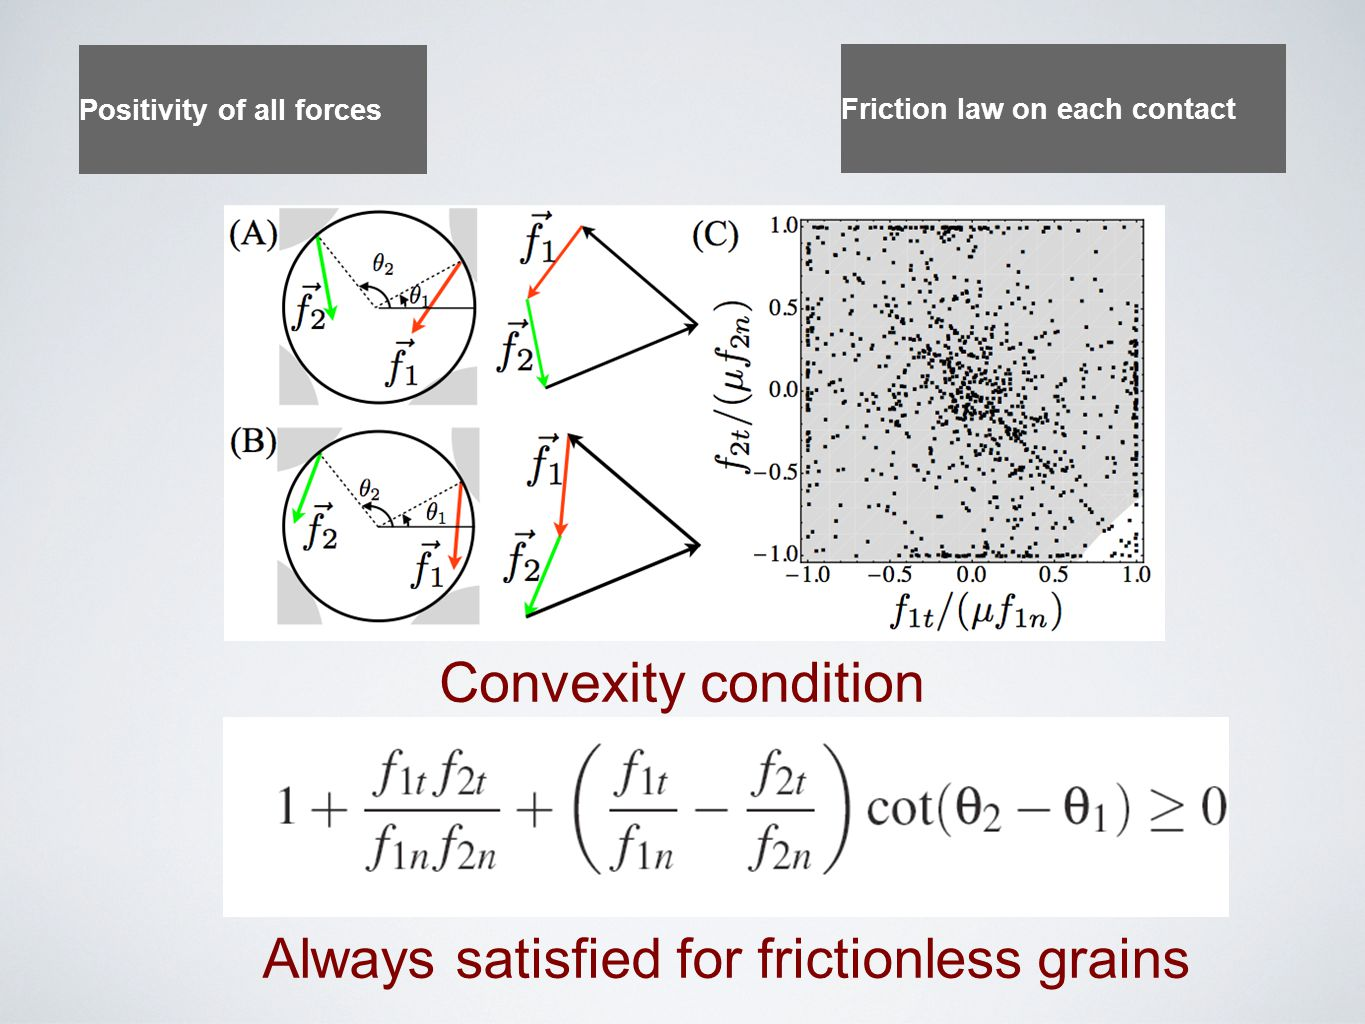 Always satisfied for frictionless grains